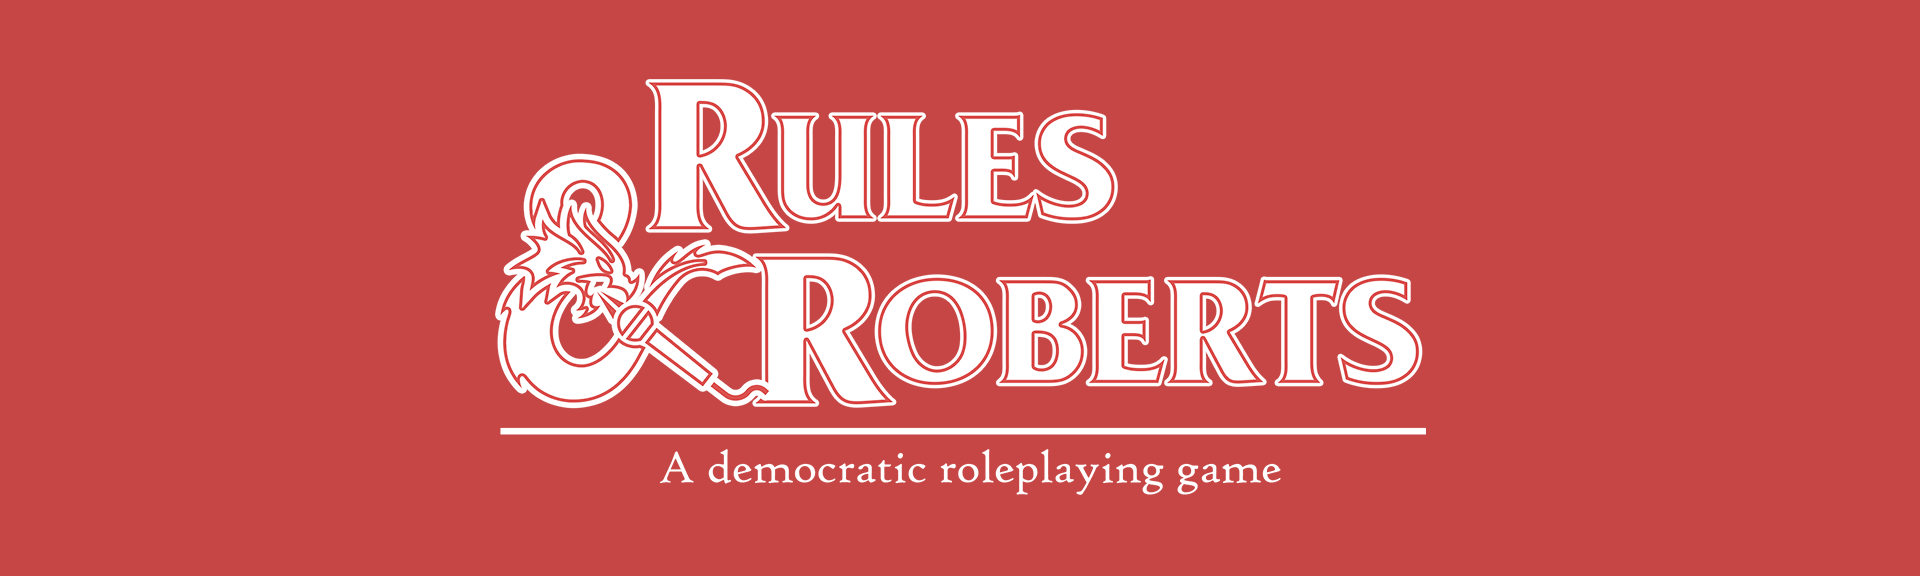 Rules & Roberts